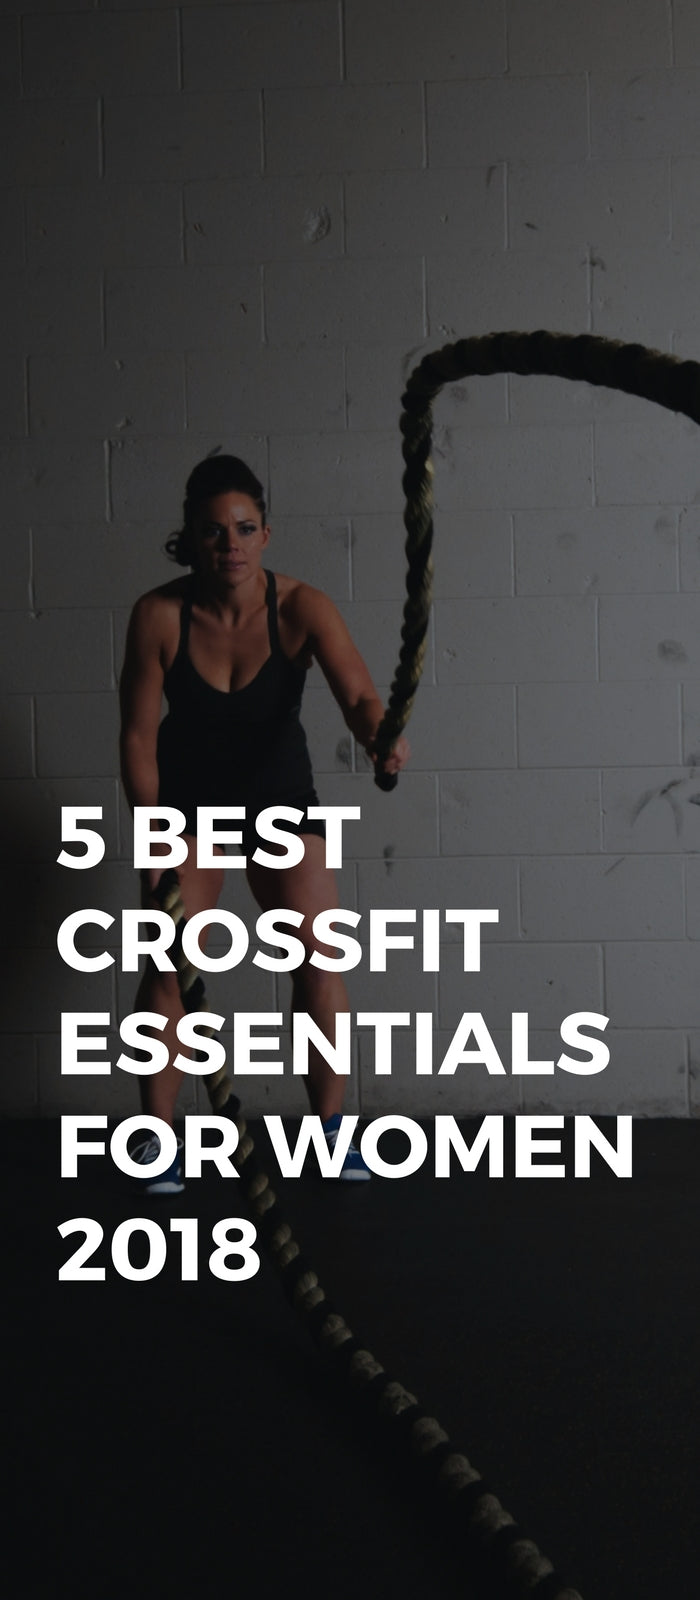 5 Best CrossFit Essentials For Women 2018